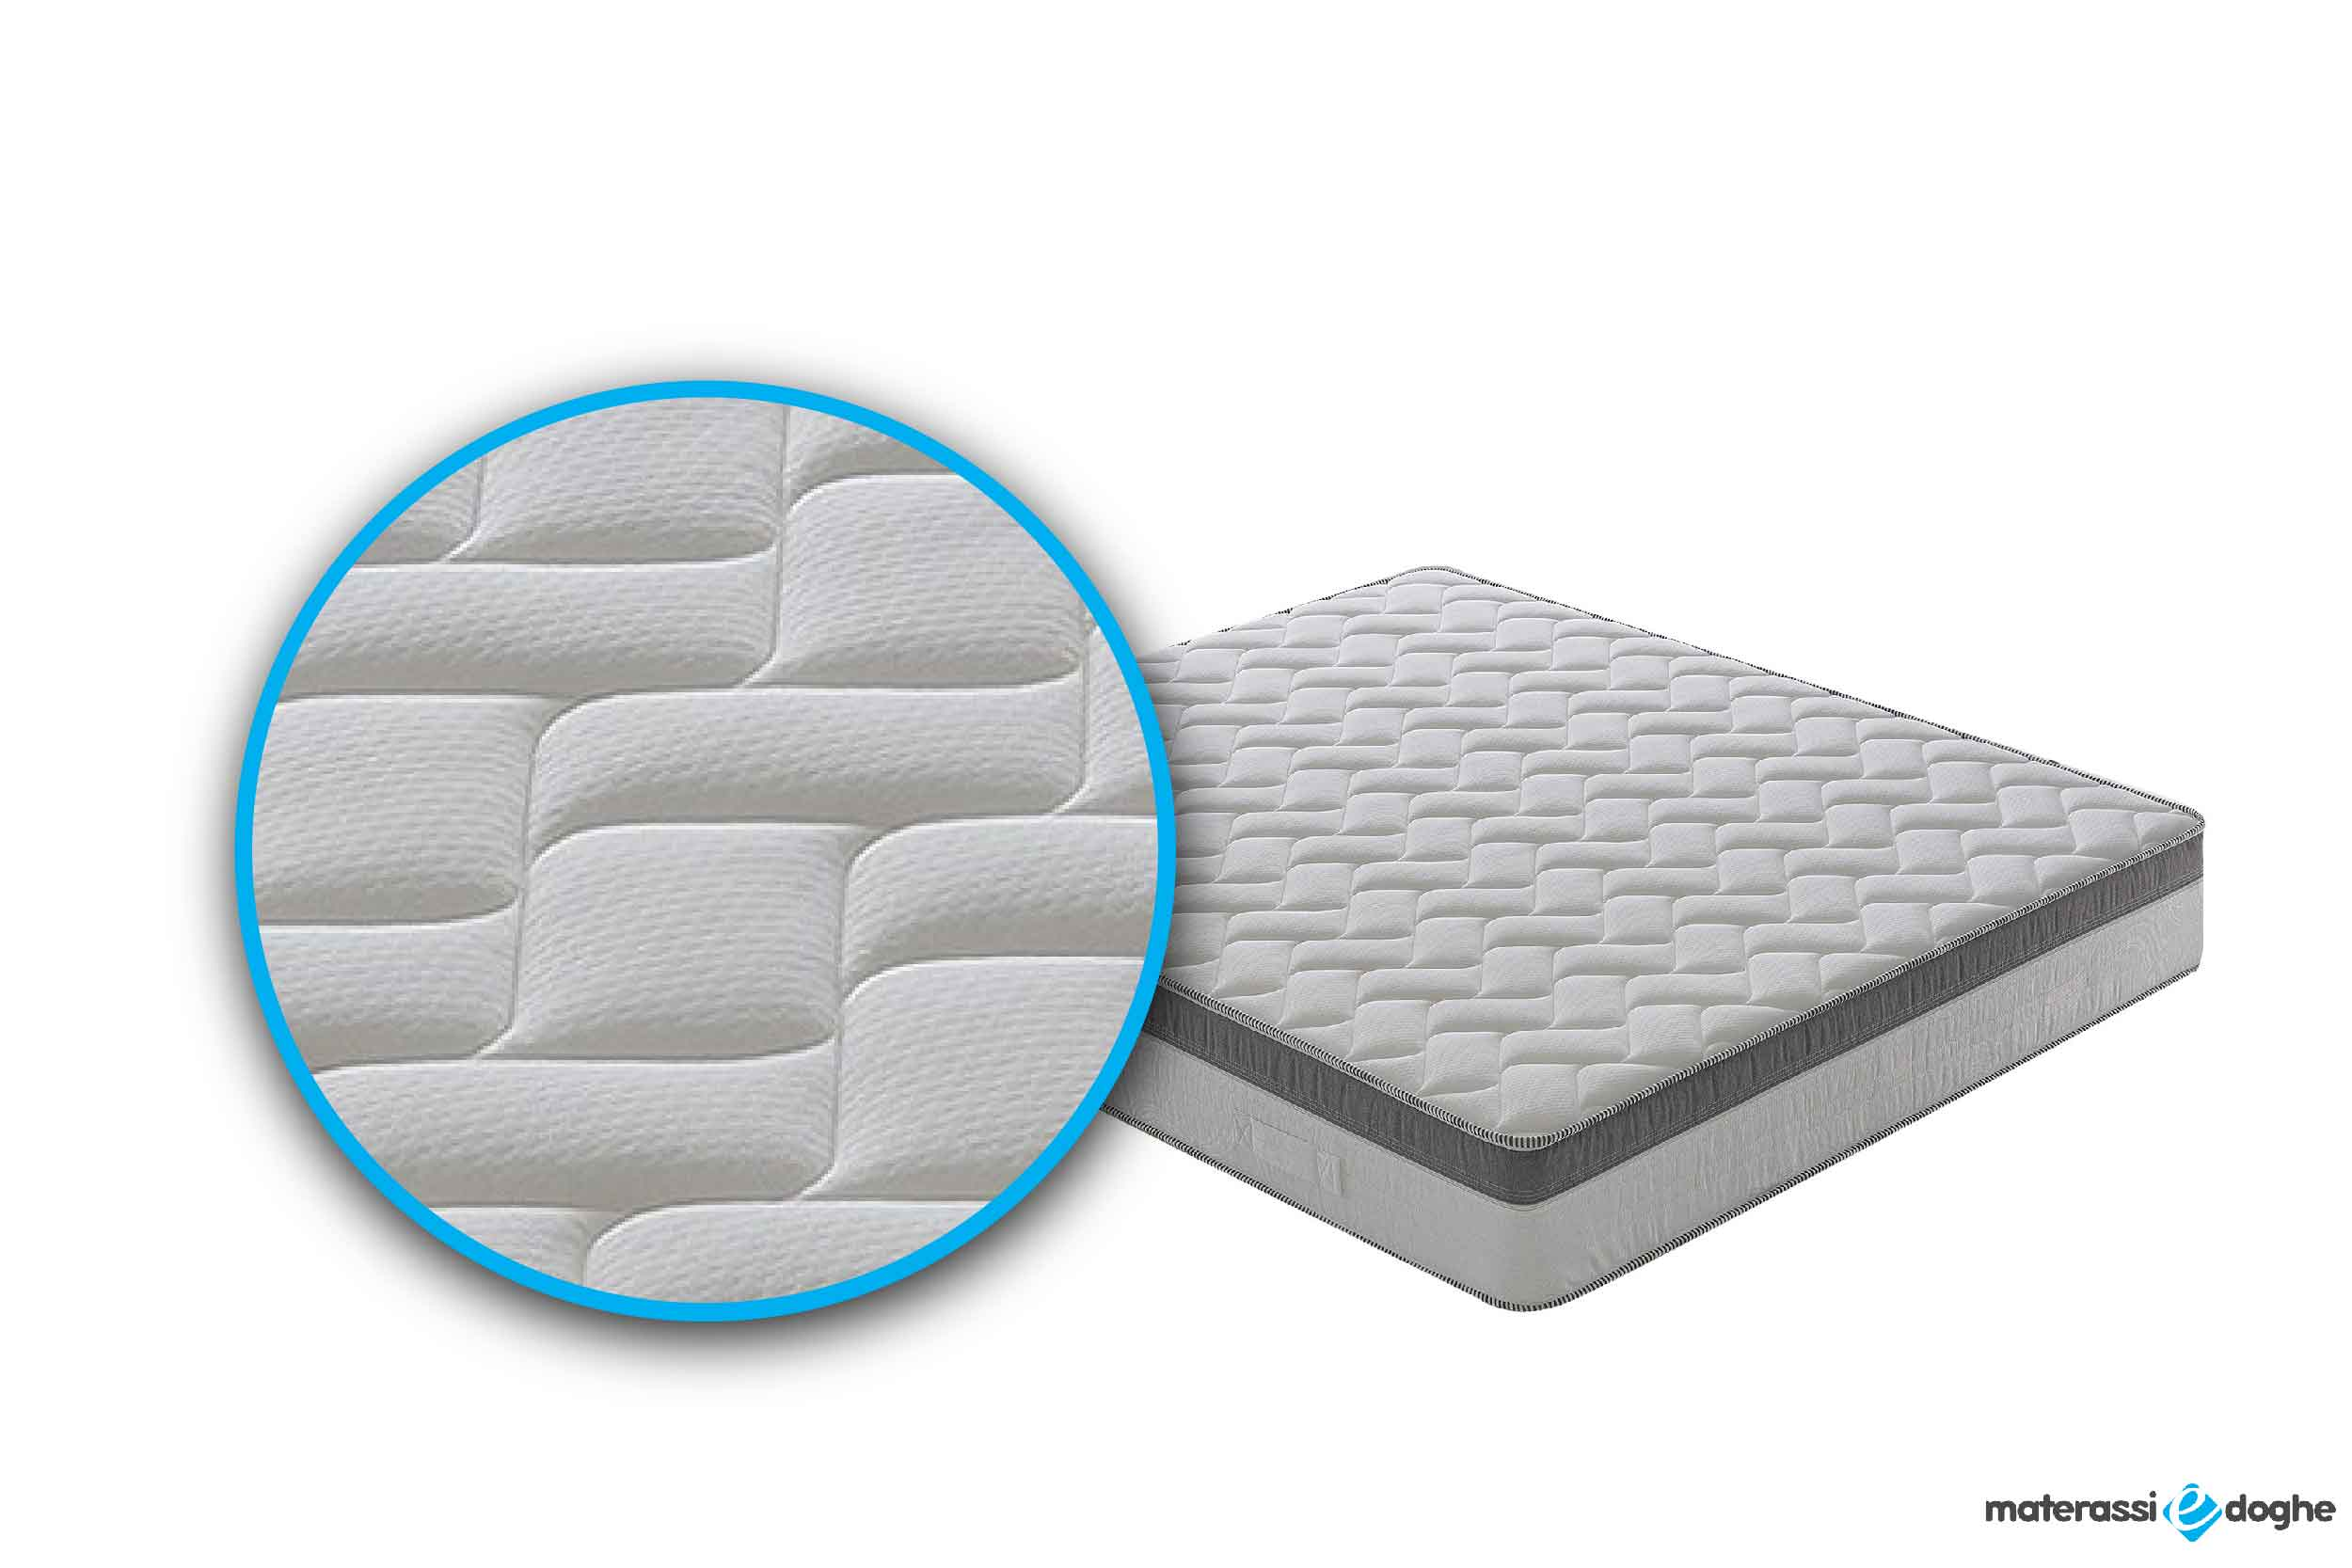 Memory Foam Mymemory Mattress Rinfrescante With 9 Different Areas Materassi E Doghe